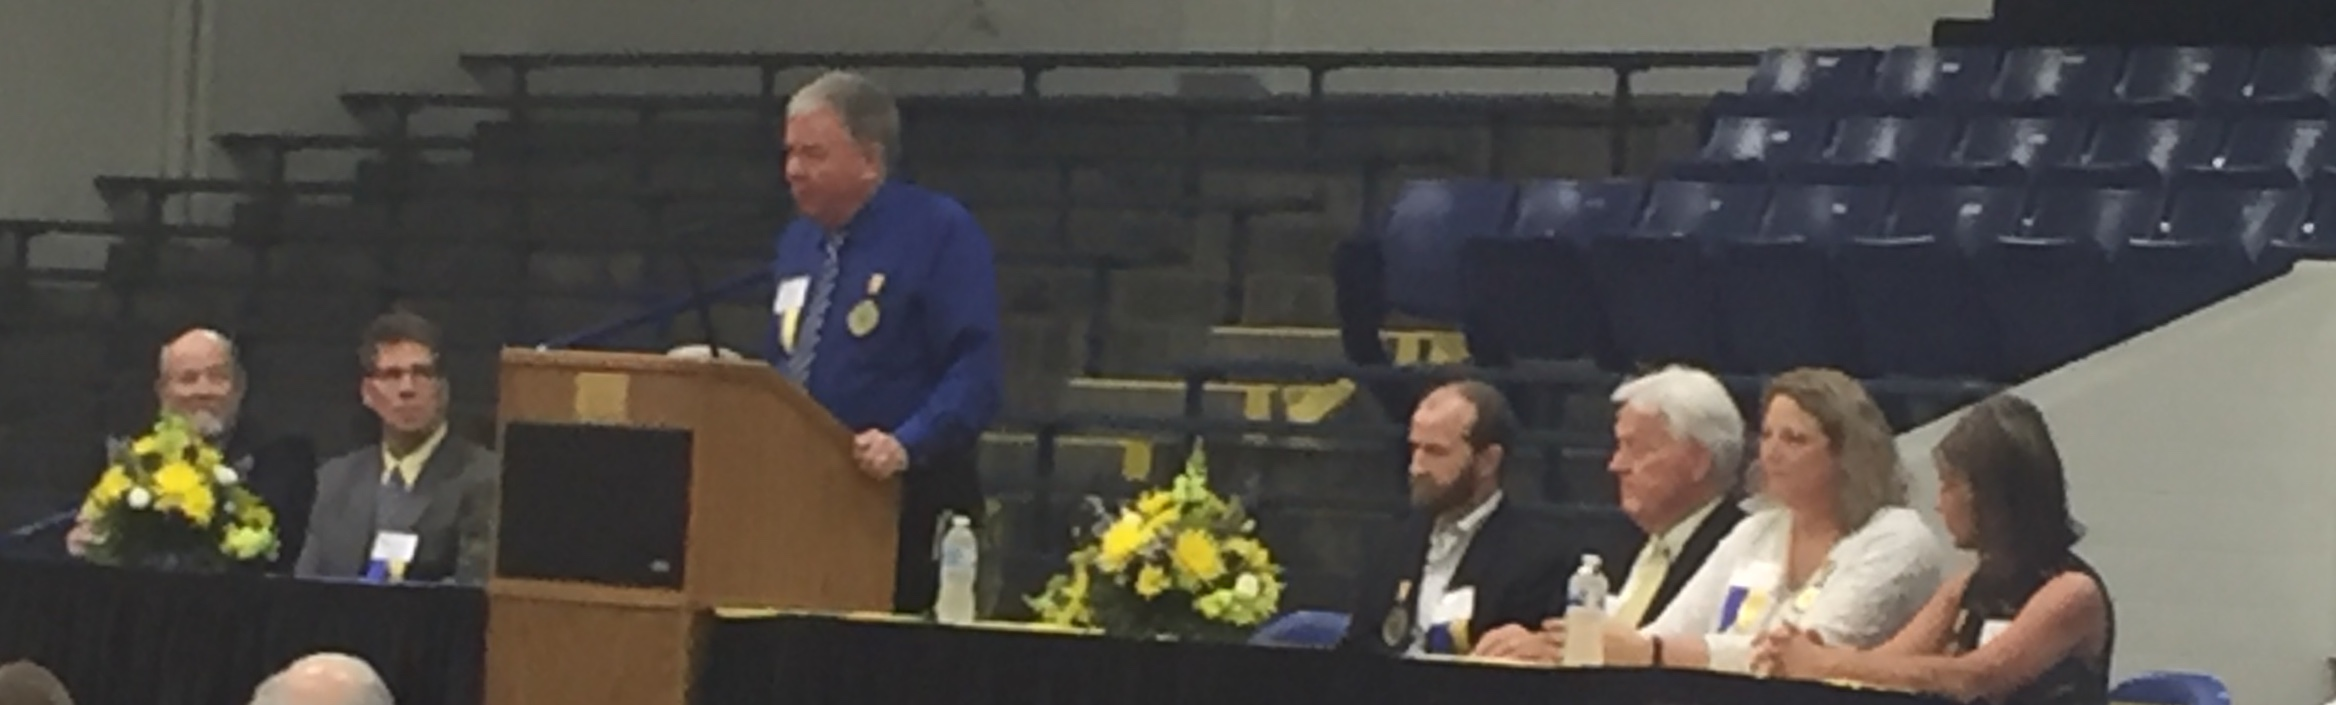 The  Fr. John Hegenauer Community Service Award was awarded to  Mr. Greg Ziegler   '  73  for his commitment to the family values NCCHS strives to impart to its students.